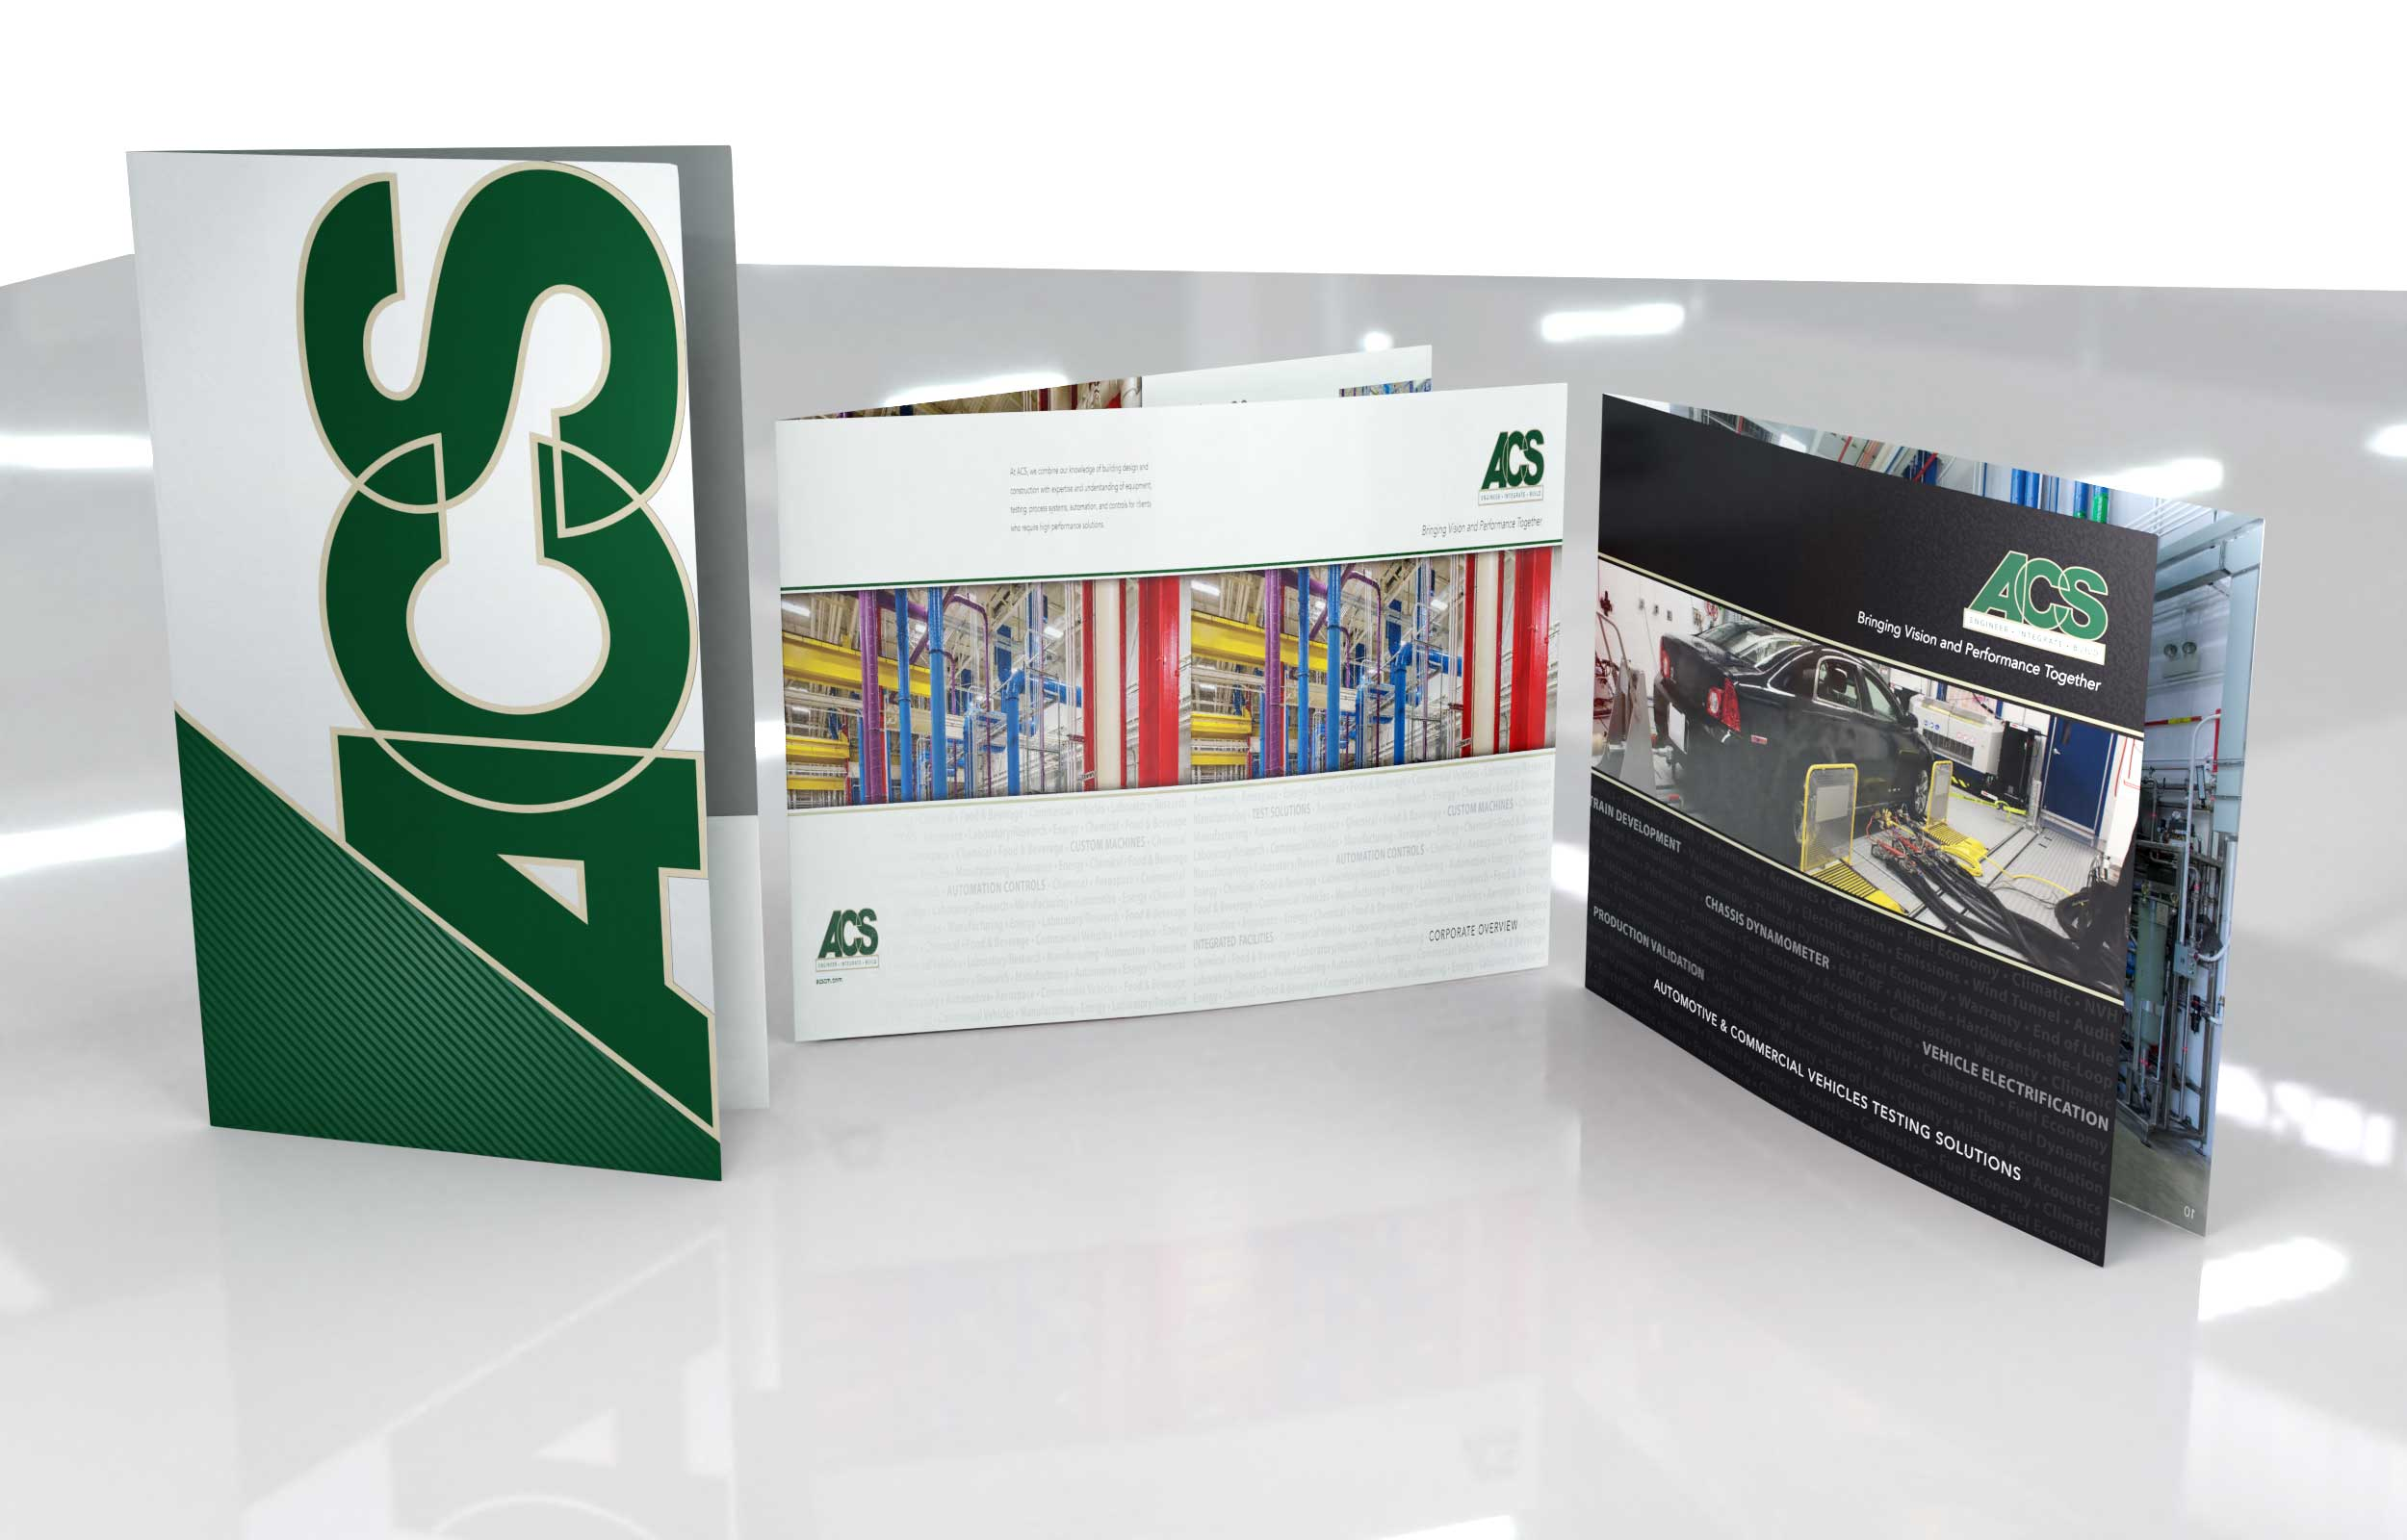 NAVEO creates brand development strategy for ACS that includes new marketing collateral ideas.